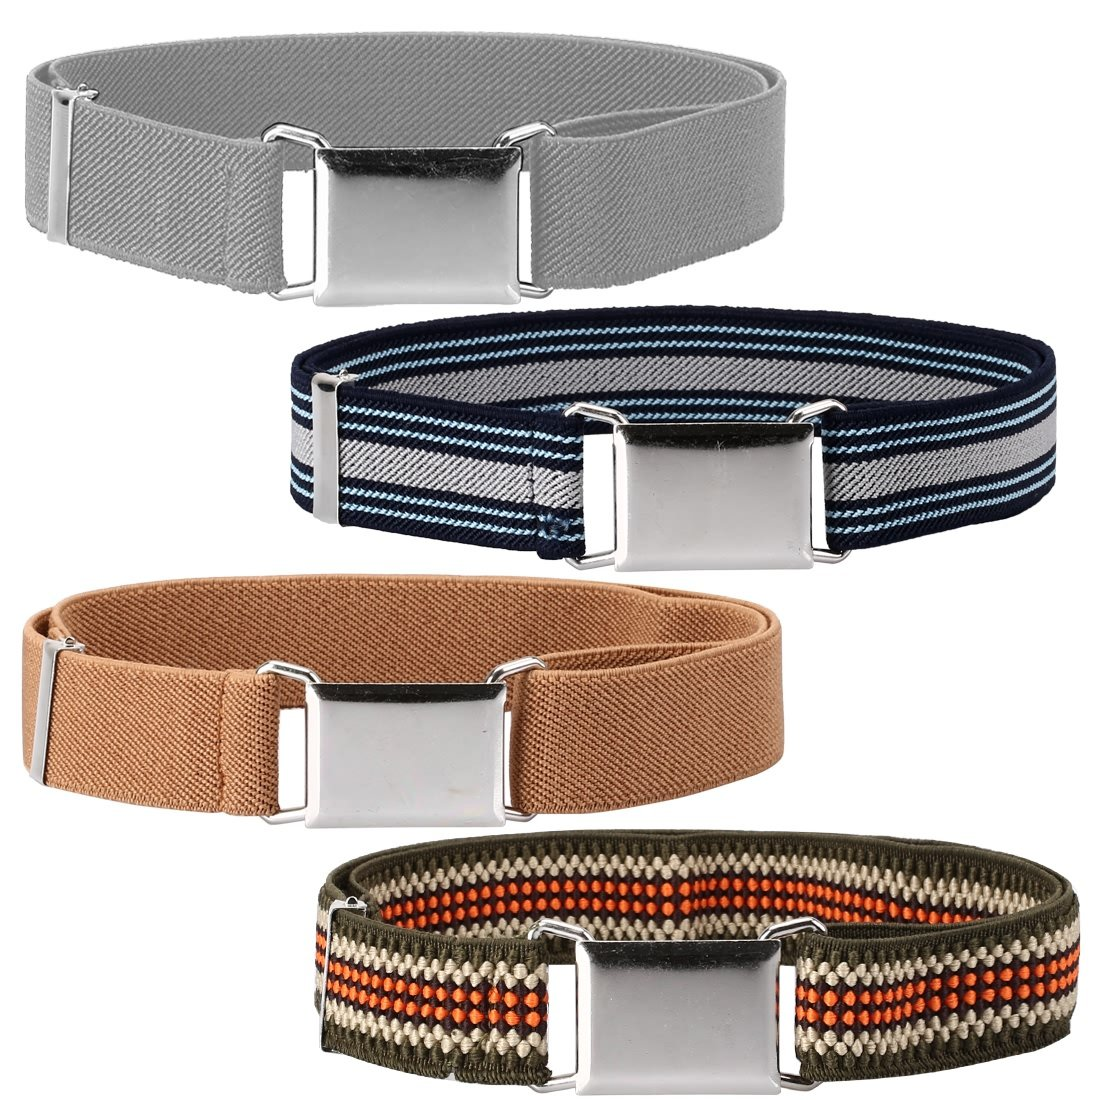 Ava & Kings 4 Pack Childrens Mixed Design 1 Inch Adjustable Elastic Easy Belts - Buckle Clasp w/Comfortable, Stretchy Waistband for Kids Toddlers Baby - Various Sets for Little Boys & Girls Comfortable Bundle Monster